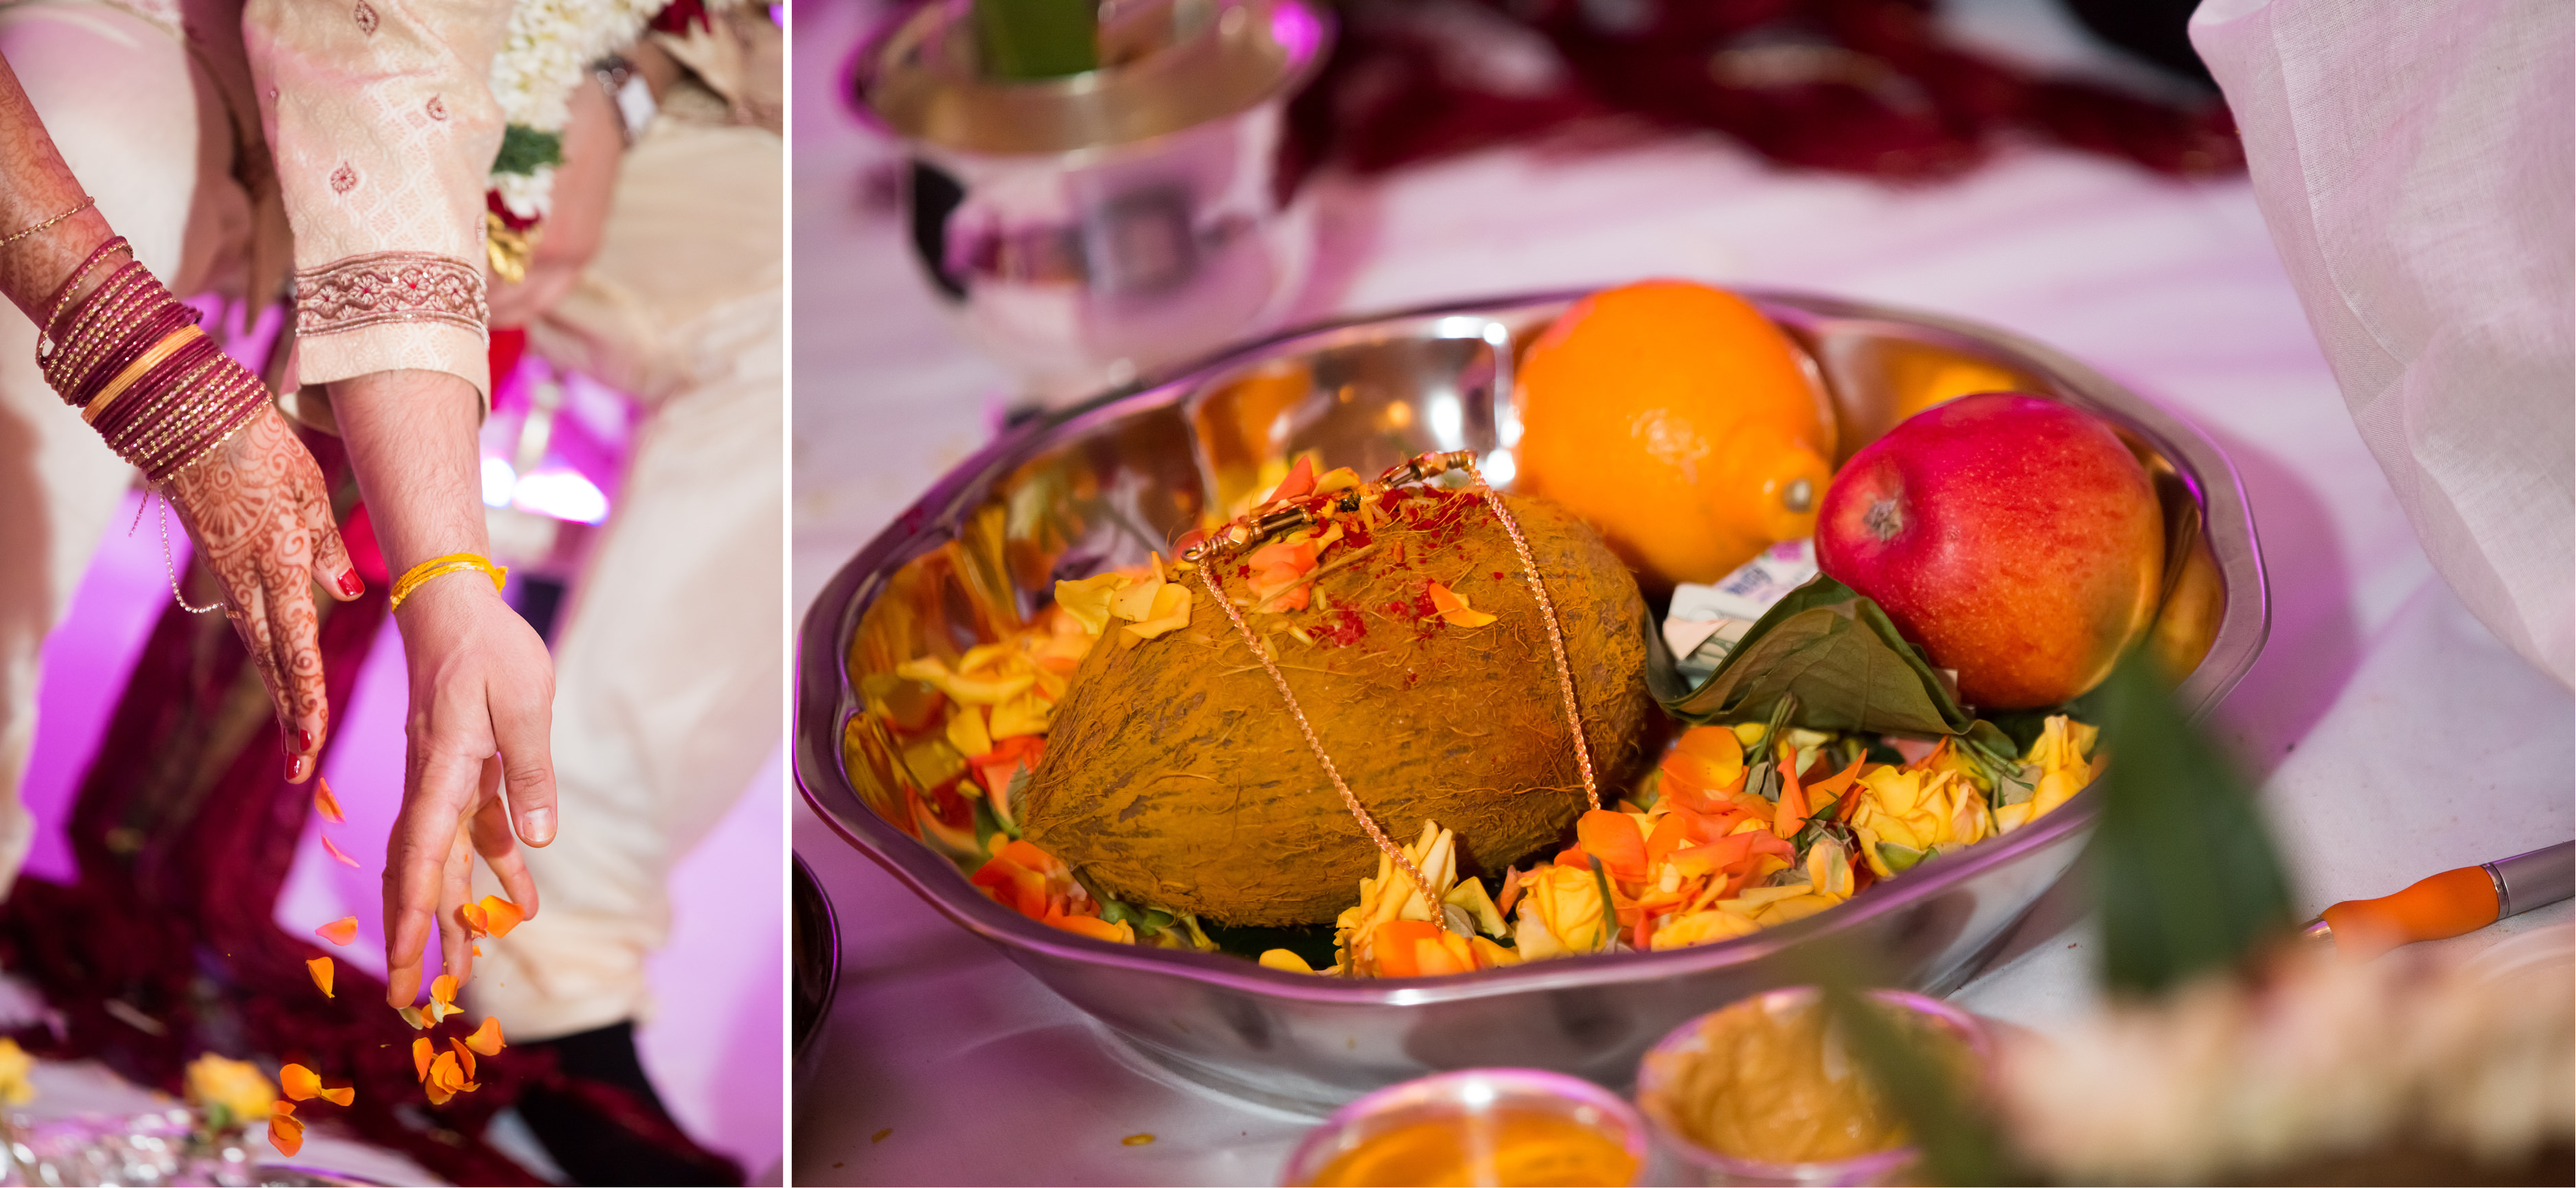 Emma_cleary_photography Indian Wedding16